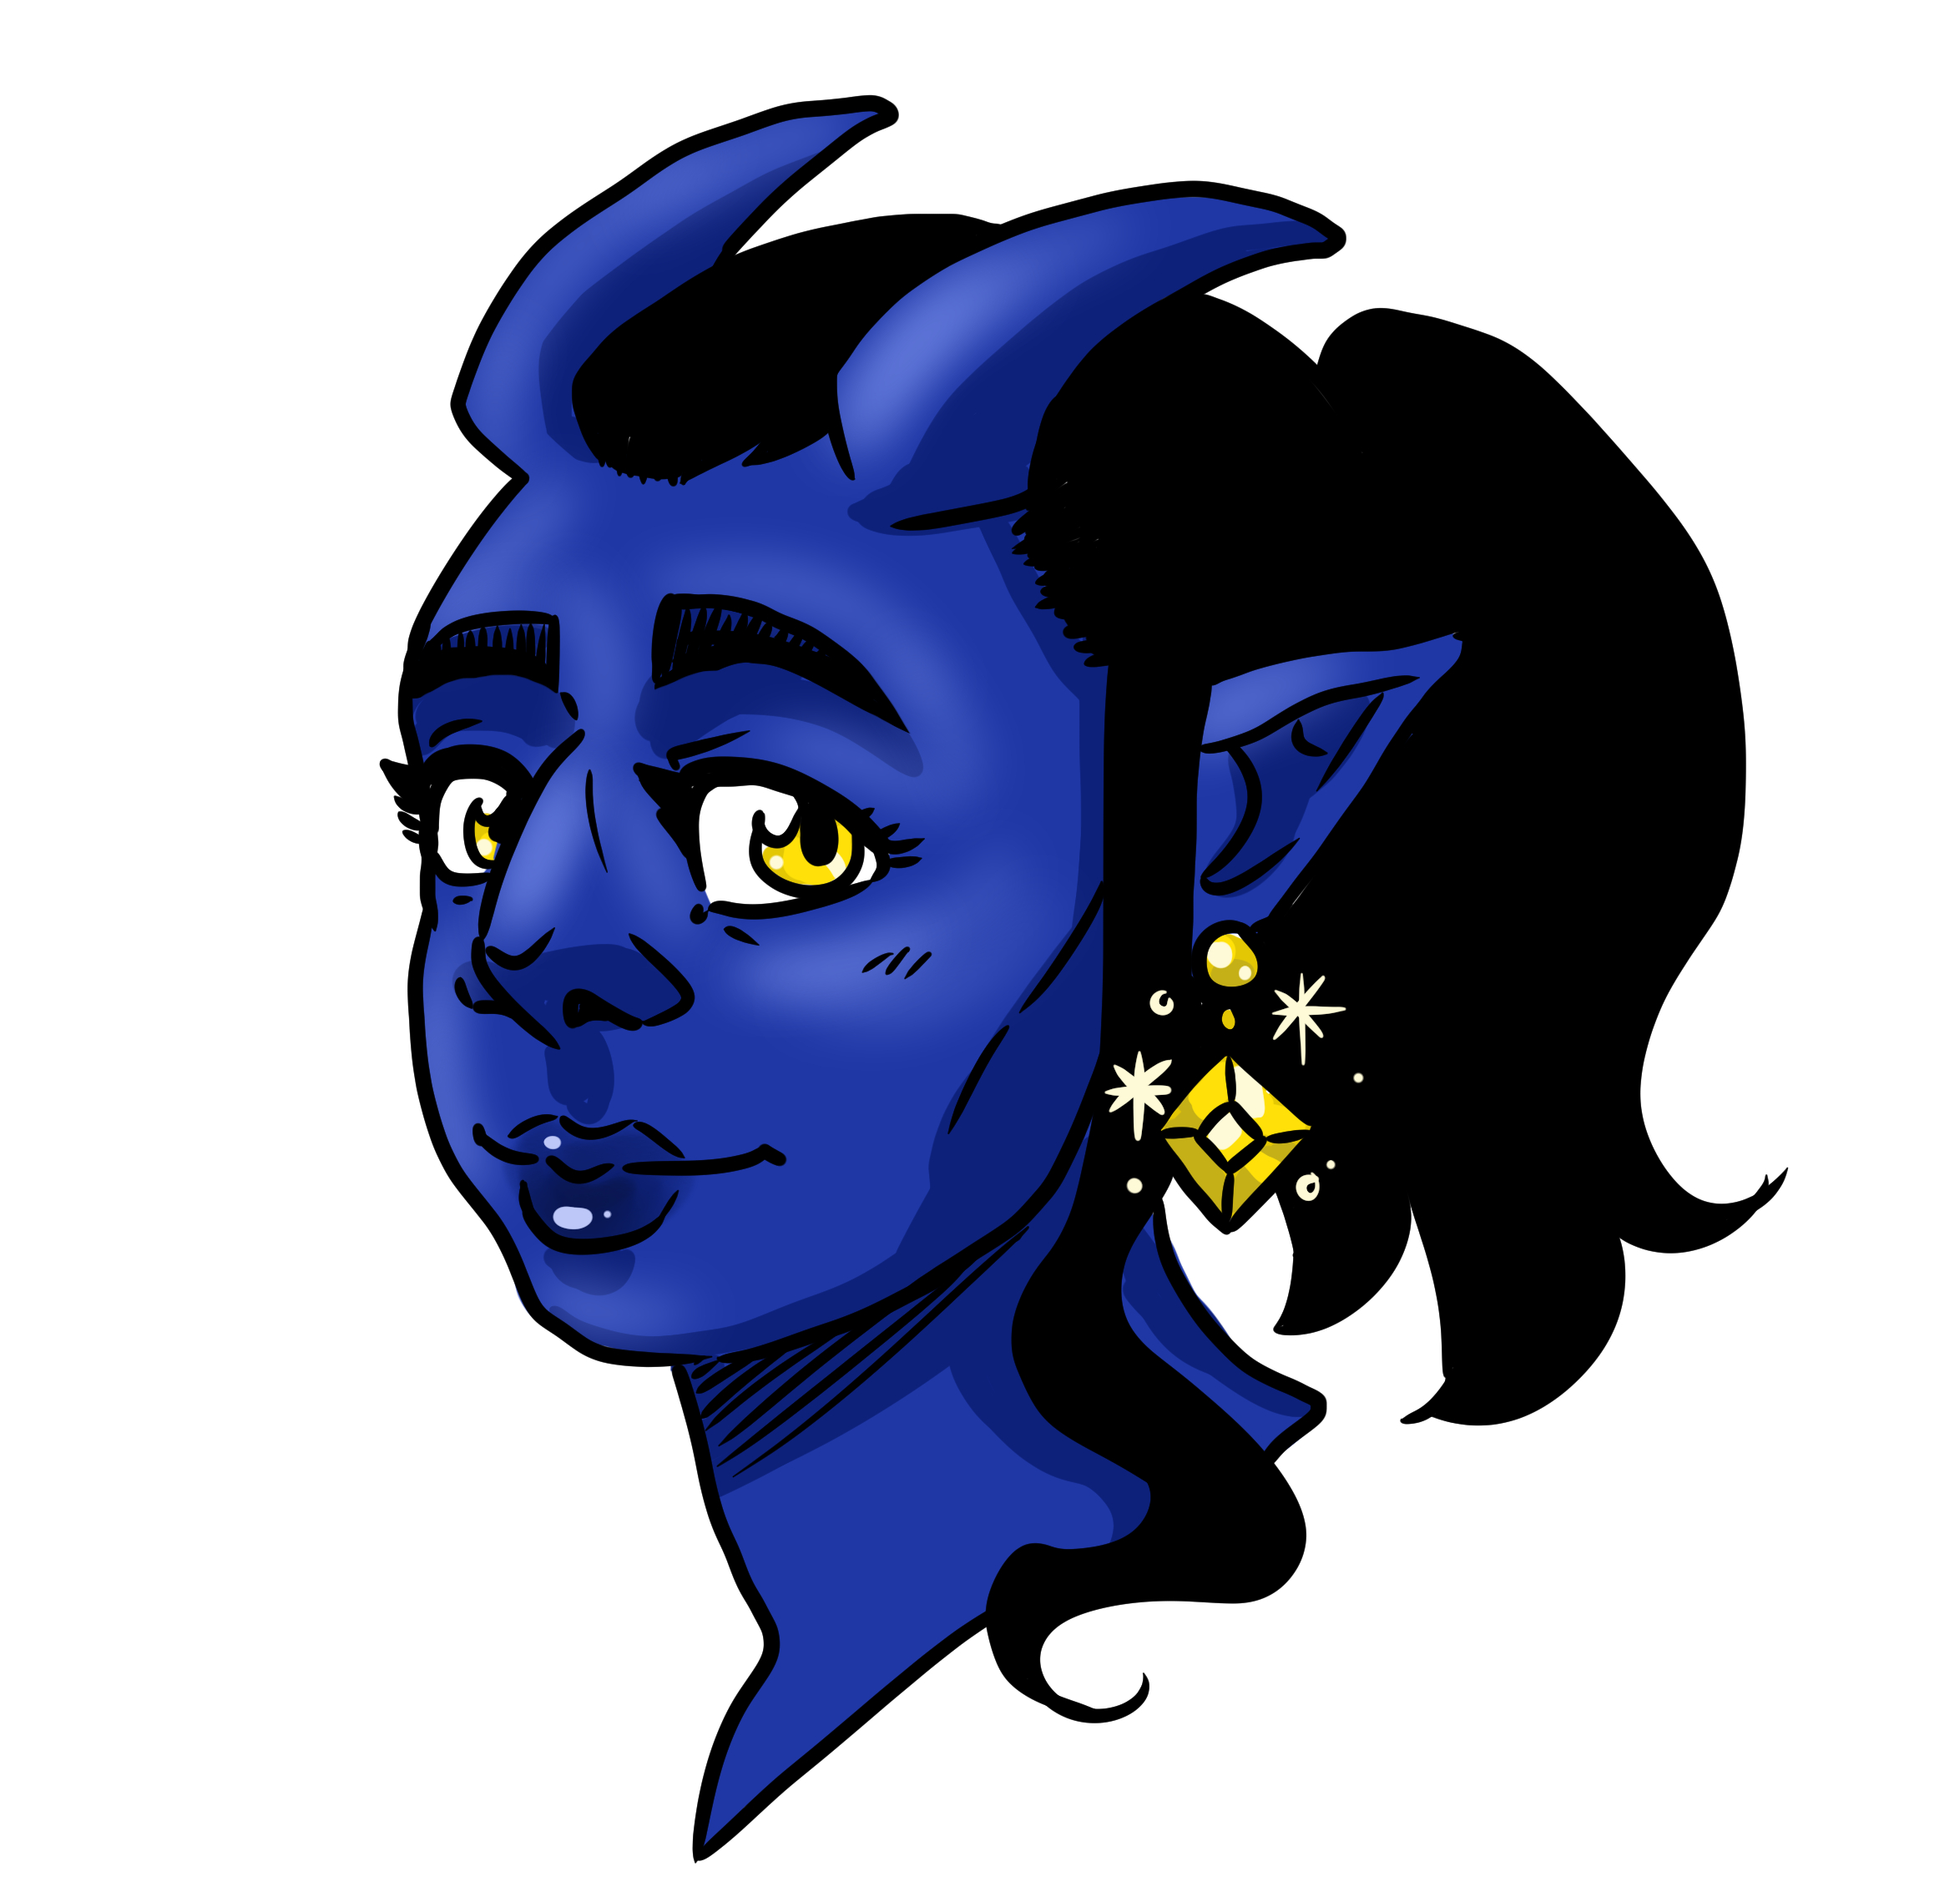 A Teifling wearing a dazzling pair of magical jeweled earrings. What affect do they have?